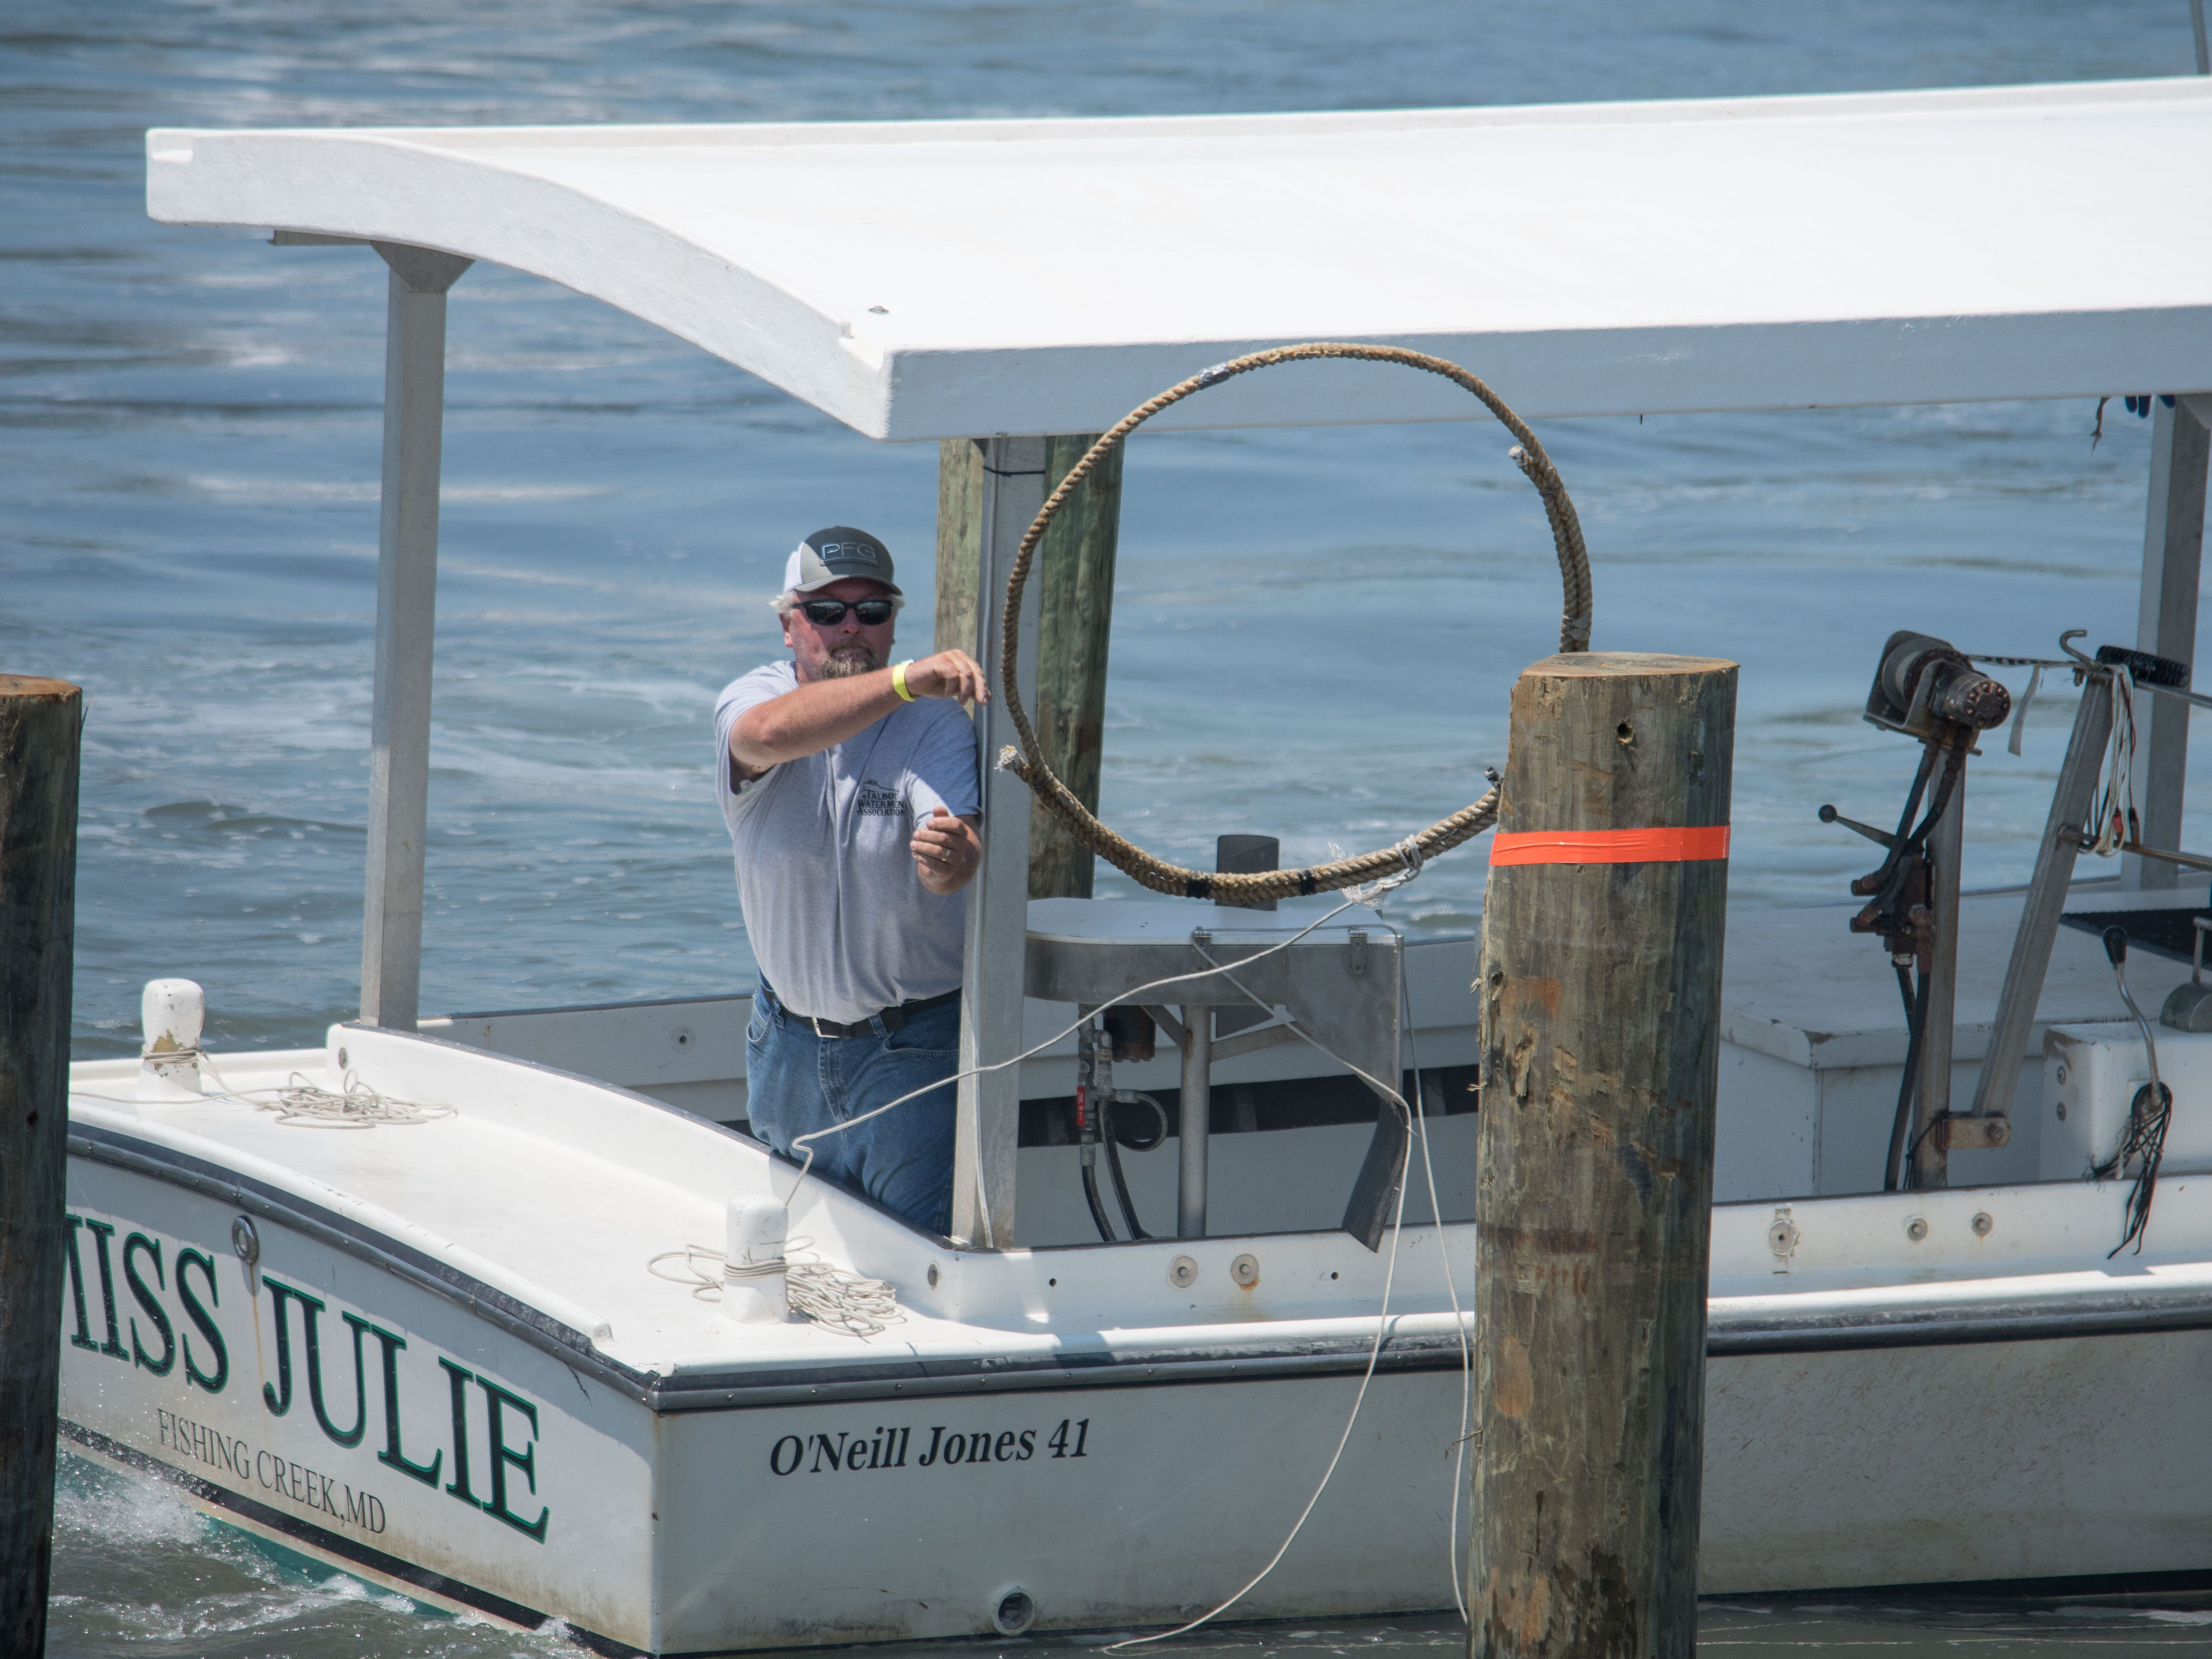 John Ashton, captain of Miss Julie, hurls a piling hoop during the Boat Docking Contest on Sunday, Aug 5, in Cape Charles.